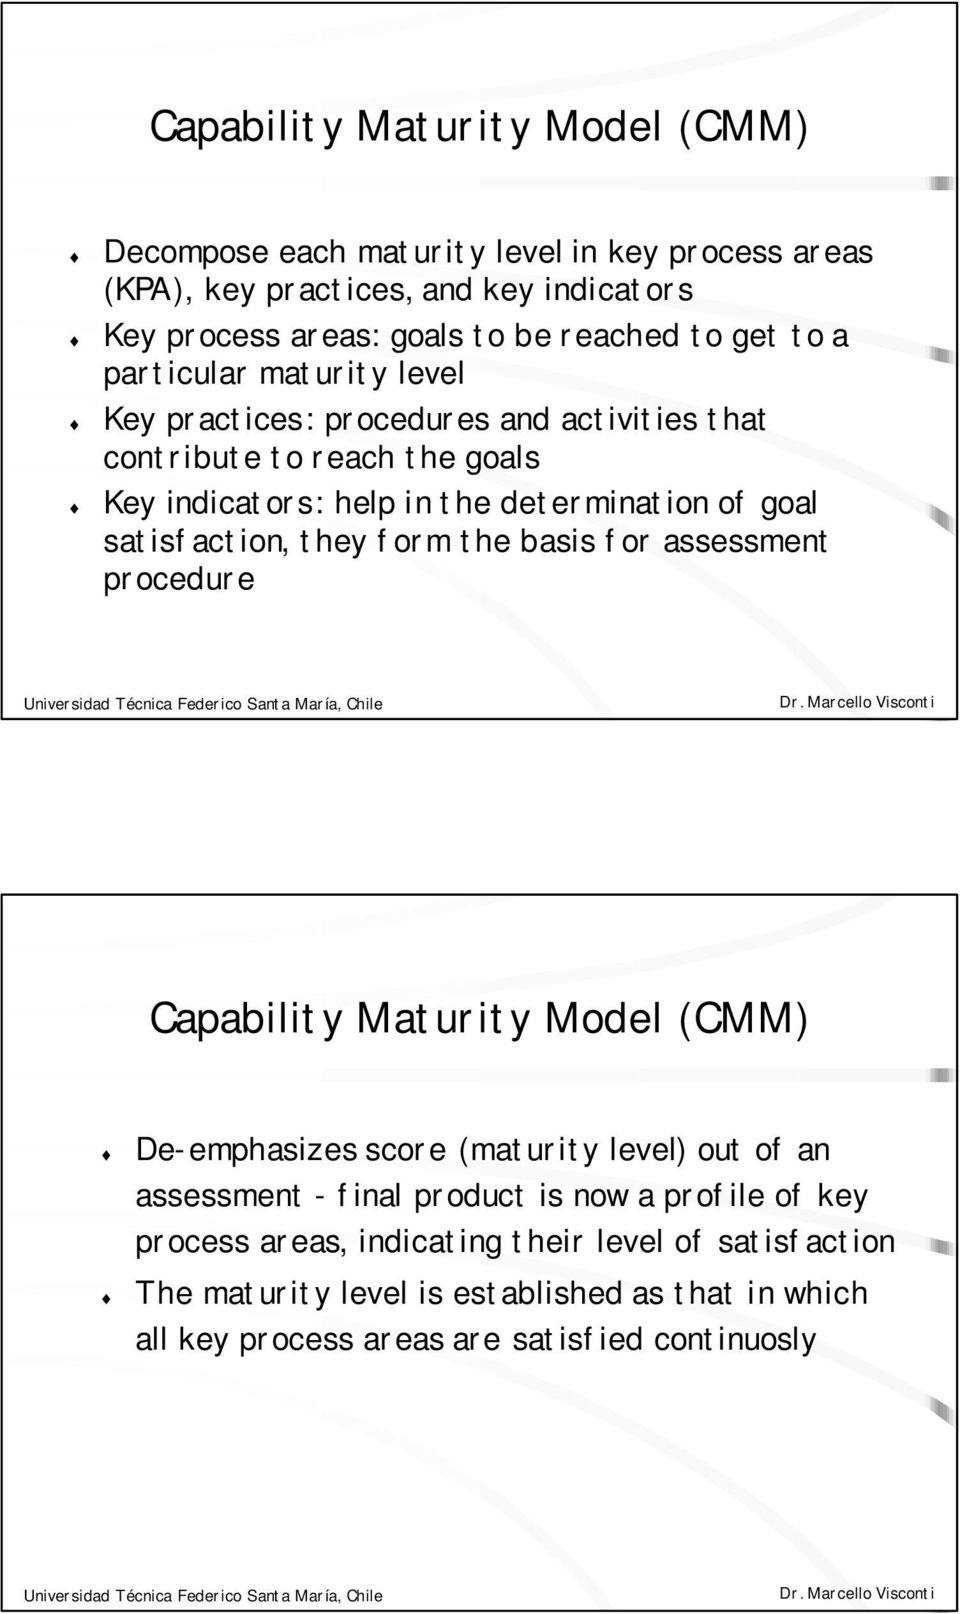 satisfaction, they form the basis for assessment procedure Capability Maturity Model (CMM) De-emphasizes score (maturity level) out of an assessment - final product